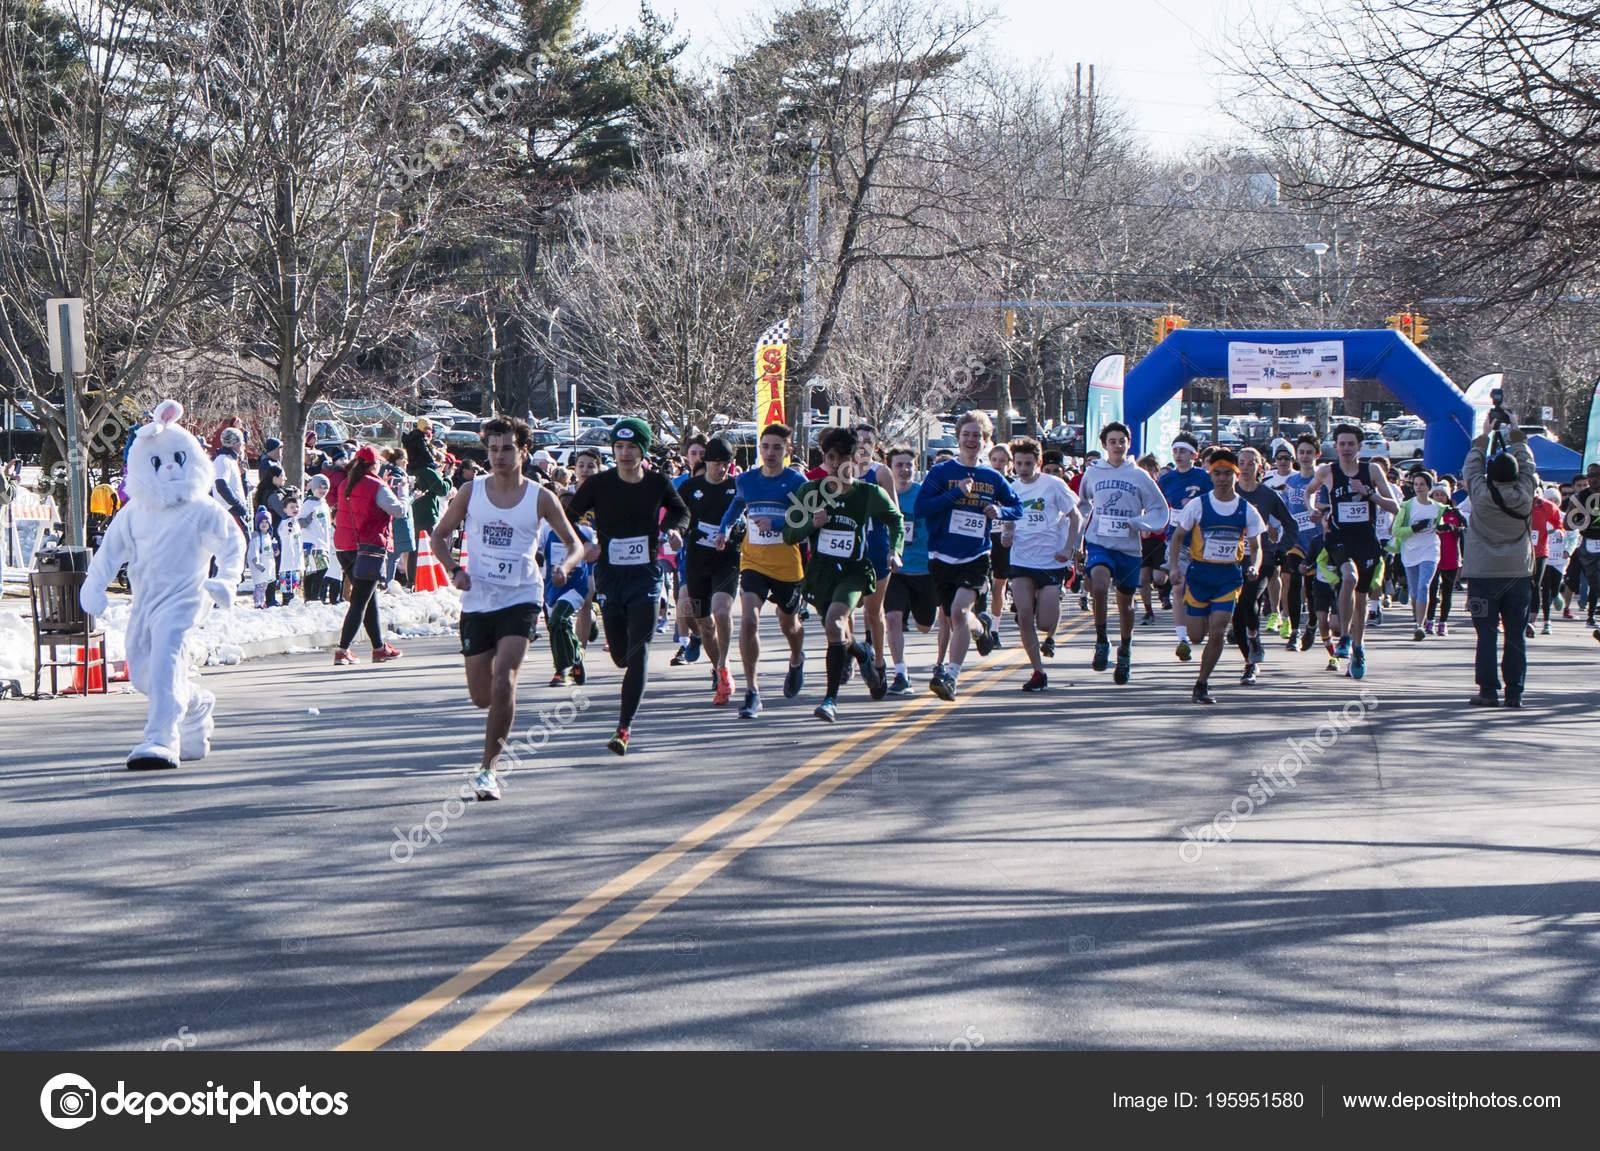 28129beb2 Garden City Usa March 2018 Race Start Easter Bunny Racing — Stock Photo